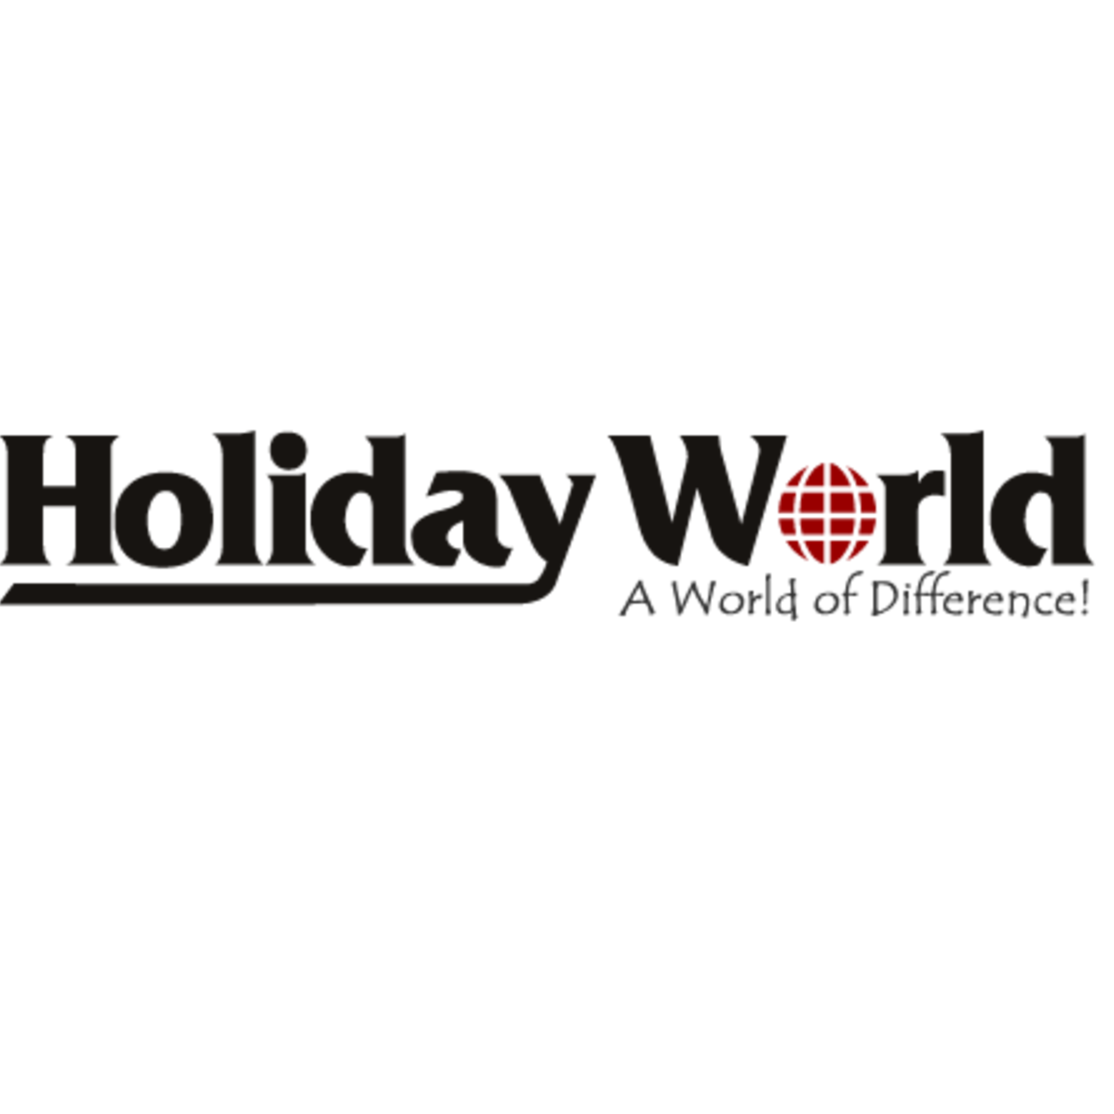 Holiday World of Katy - Katy, TX - Sporting Goods Stores